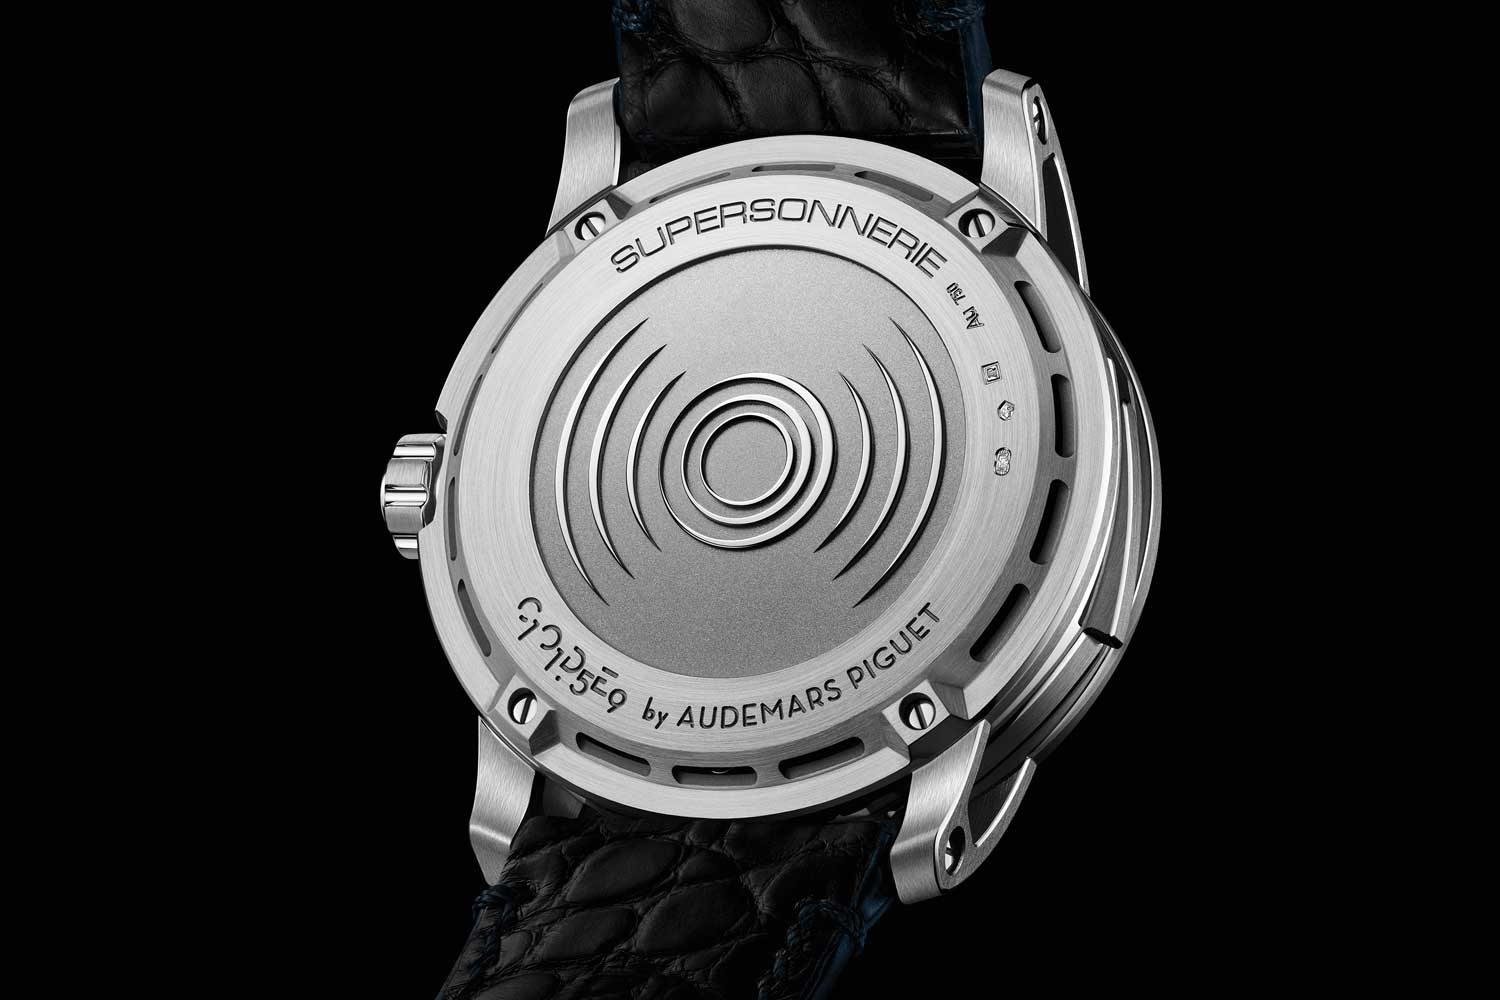 """""""Soundwave"""" caseback design of the Code 11.59 by Audemars Piguet Minute Repeater Supersonnerie"""